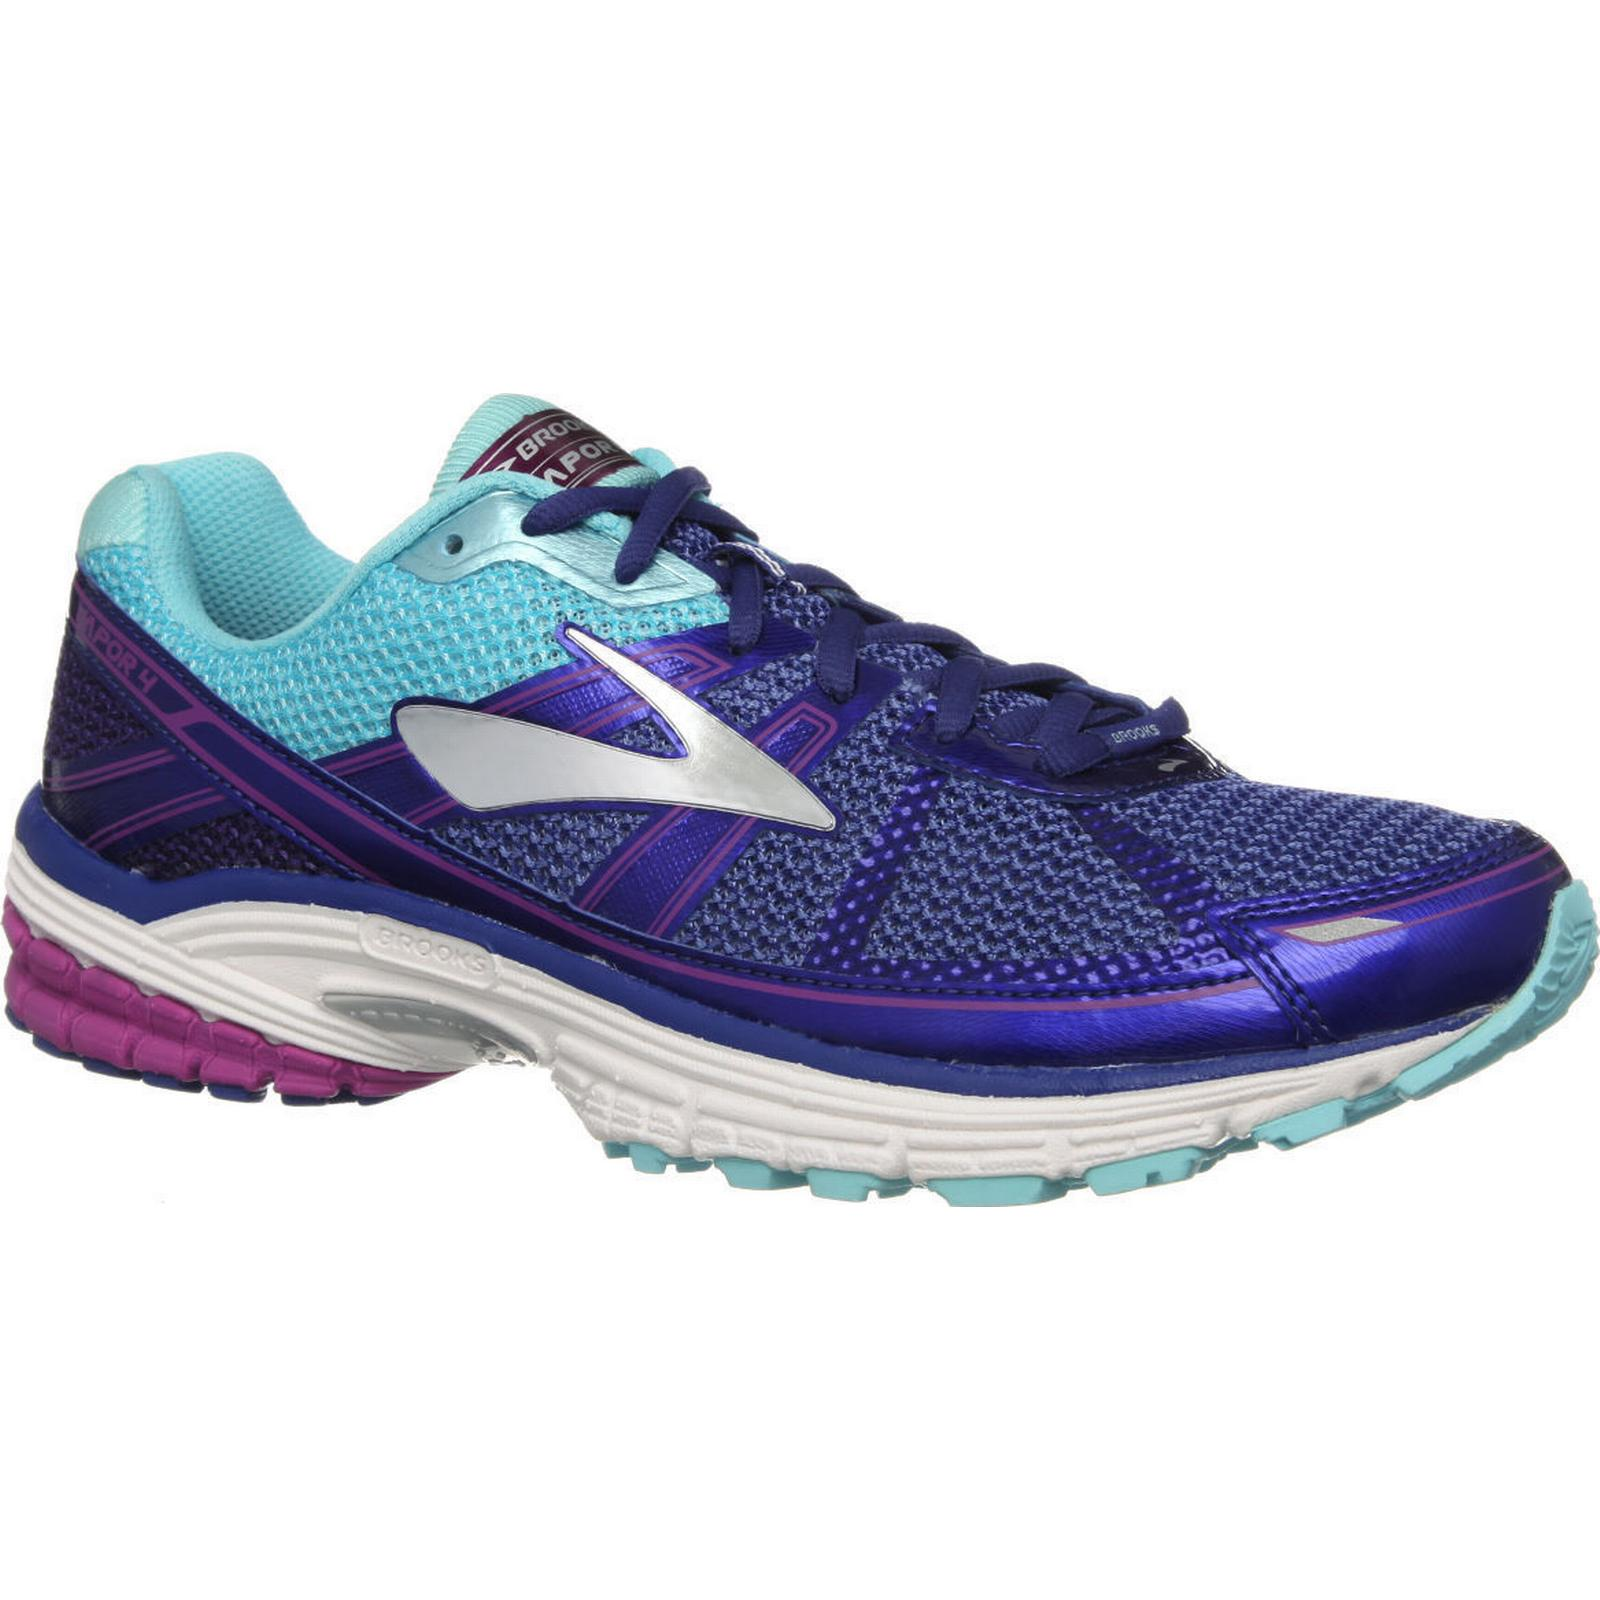 Wiggle Online 4 Cycle Shop Brooks Women's Vapor 4 Online Shoes Running Shoes 071b6f